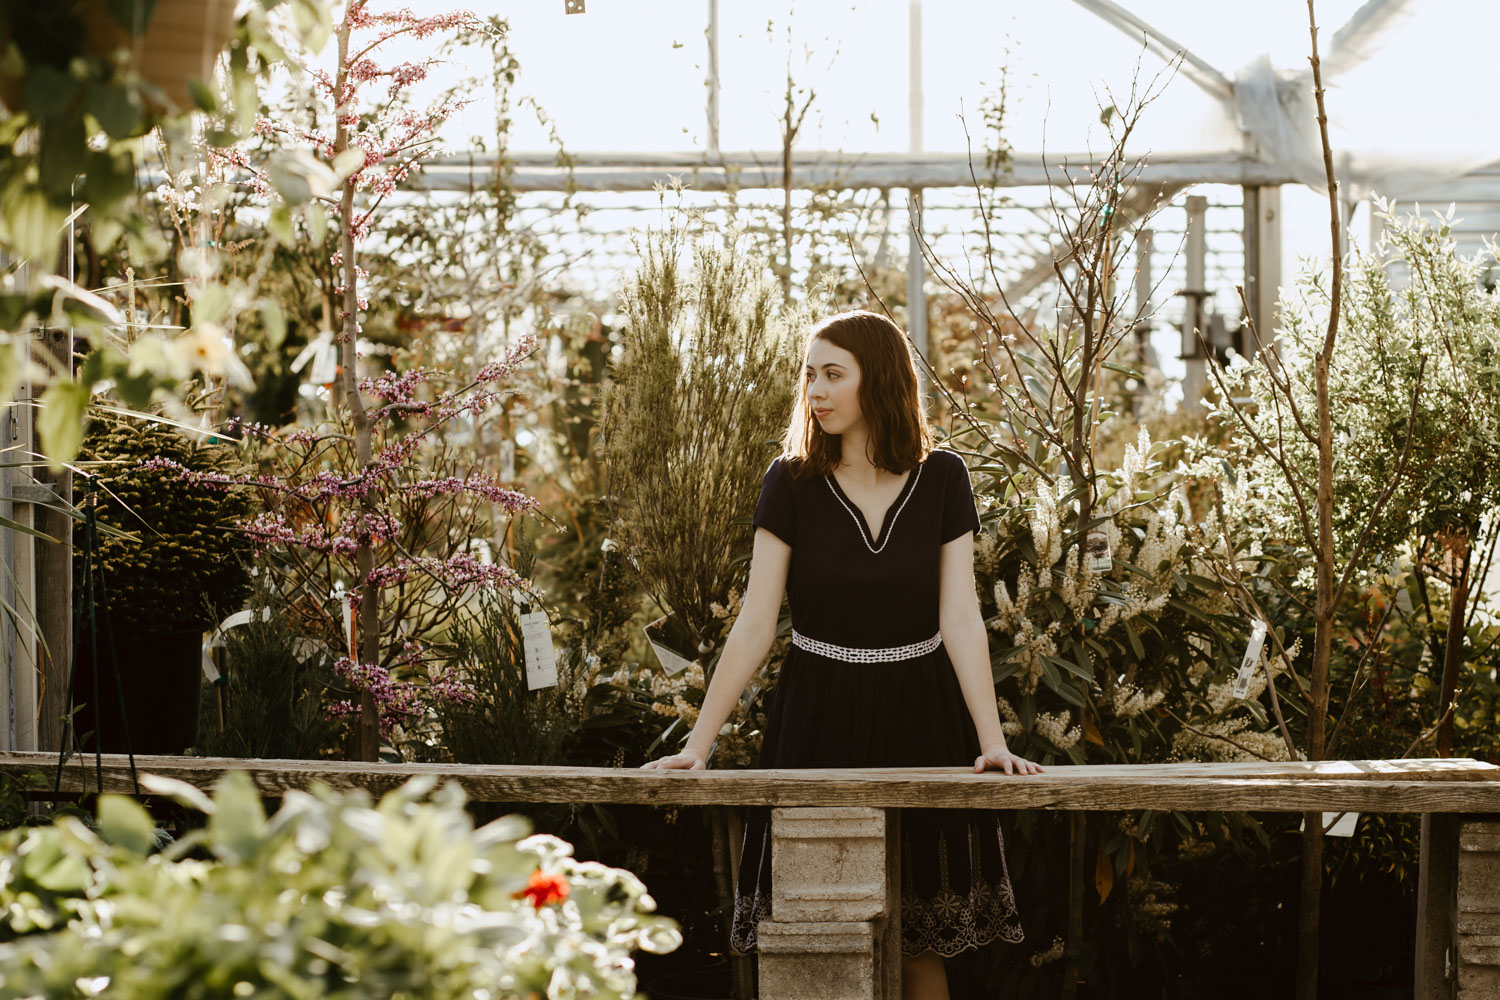 Boise Senior Photographer in Boise at Edwards Greenhouse from Timberline High School.